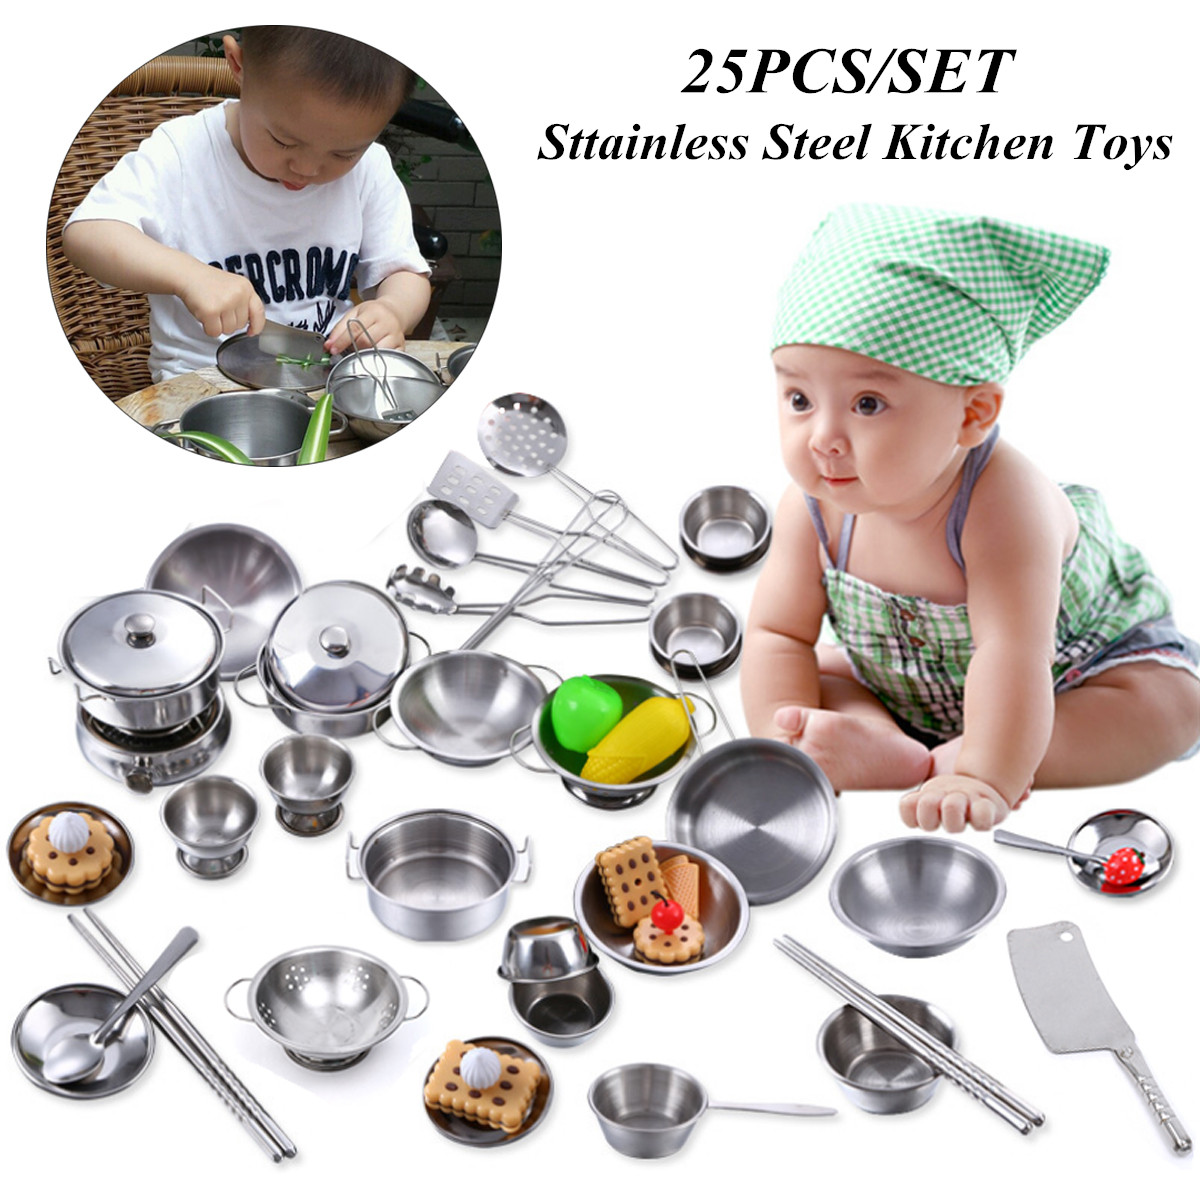 25 Pcs Smooth Stainless Steel Pretend Play Kitchen Toys Children Kids Mini Model Kitchenware Cookware Cooking Toys Safety